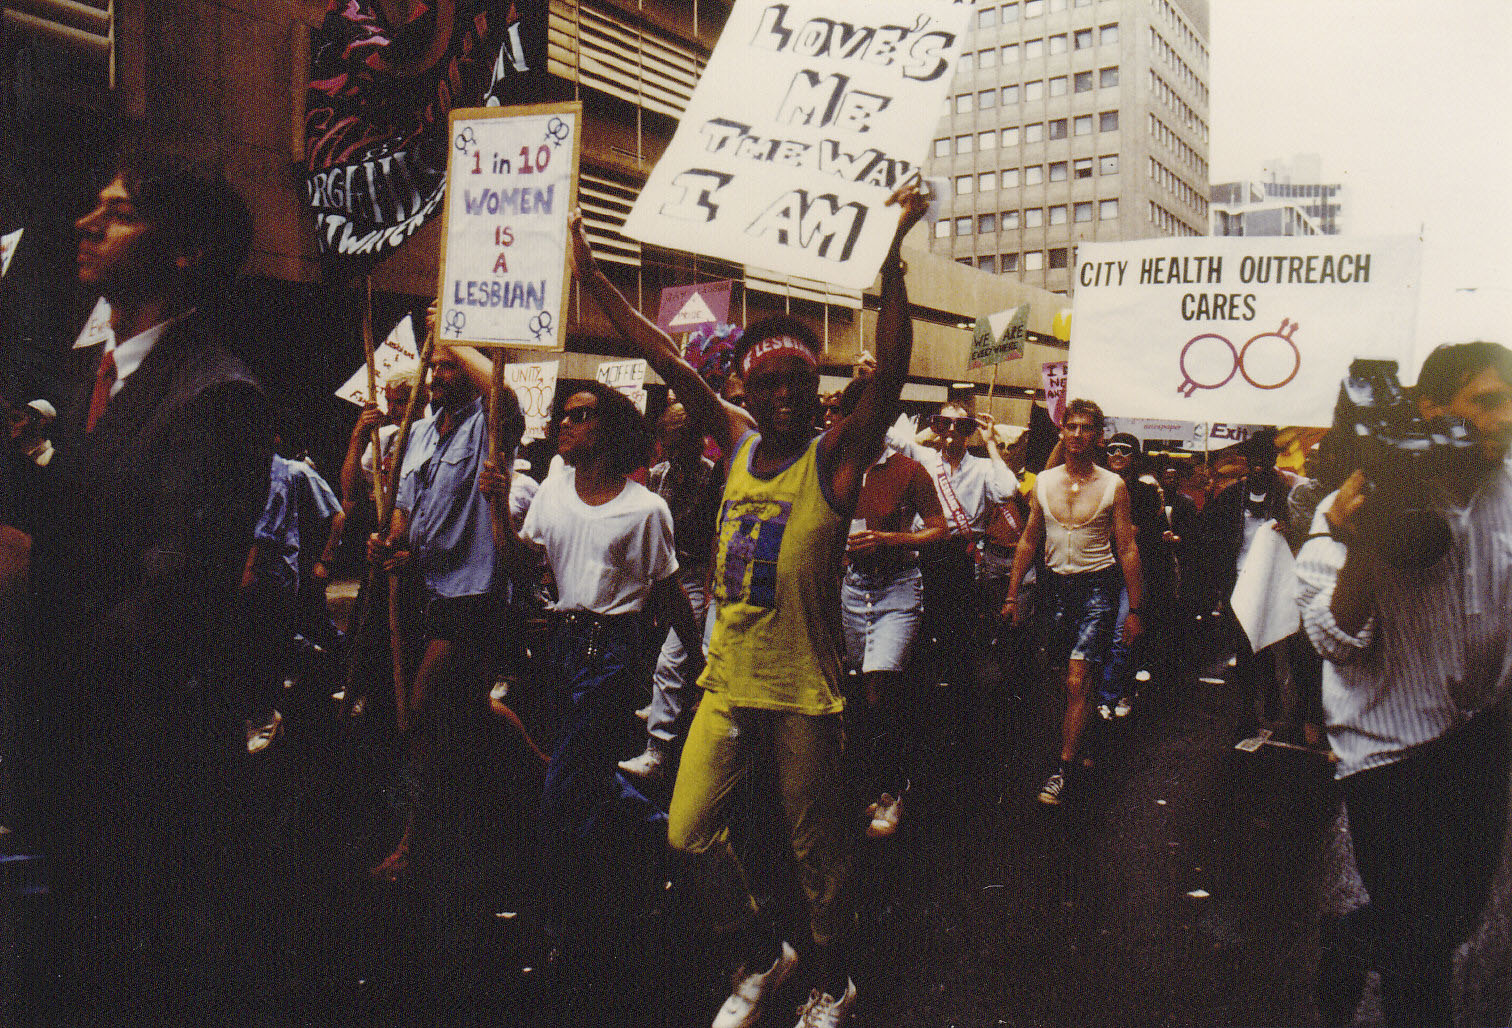 13 October 1990: Marching through the streets of Hillbrow during the first Pride march in Johannesburg. (Donne Rundle Collection, Gala Queer Archive)